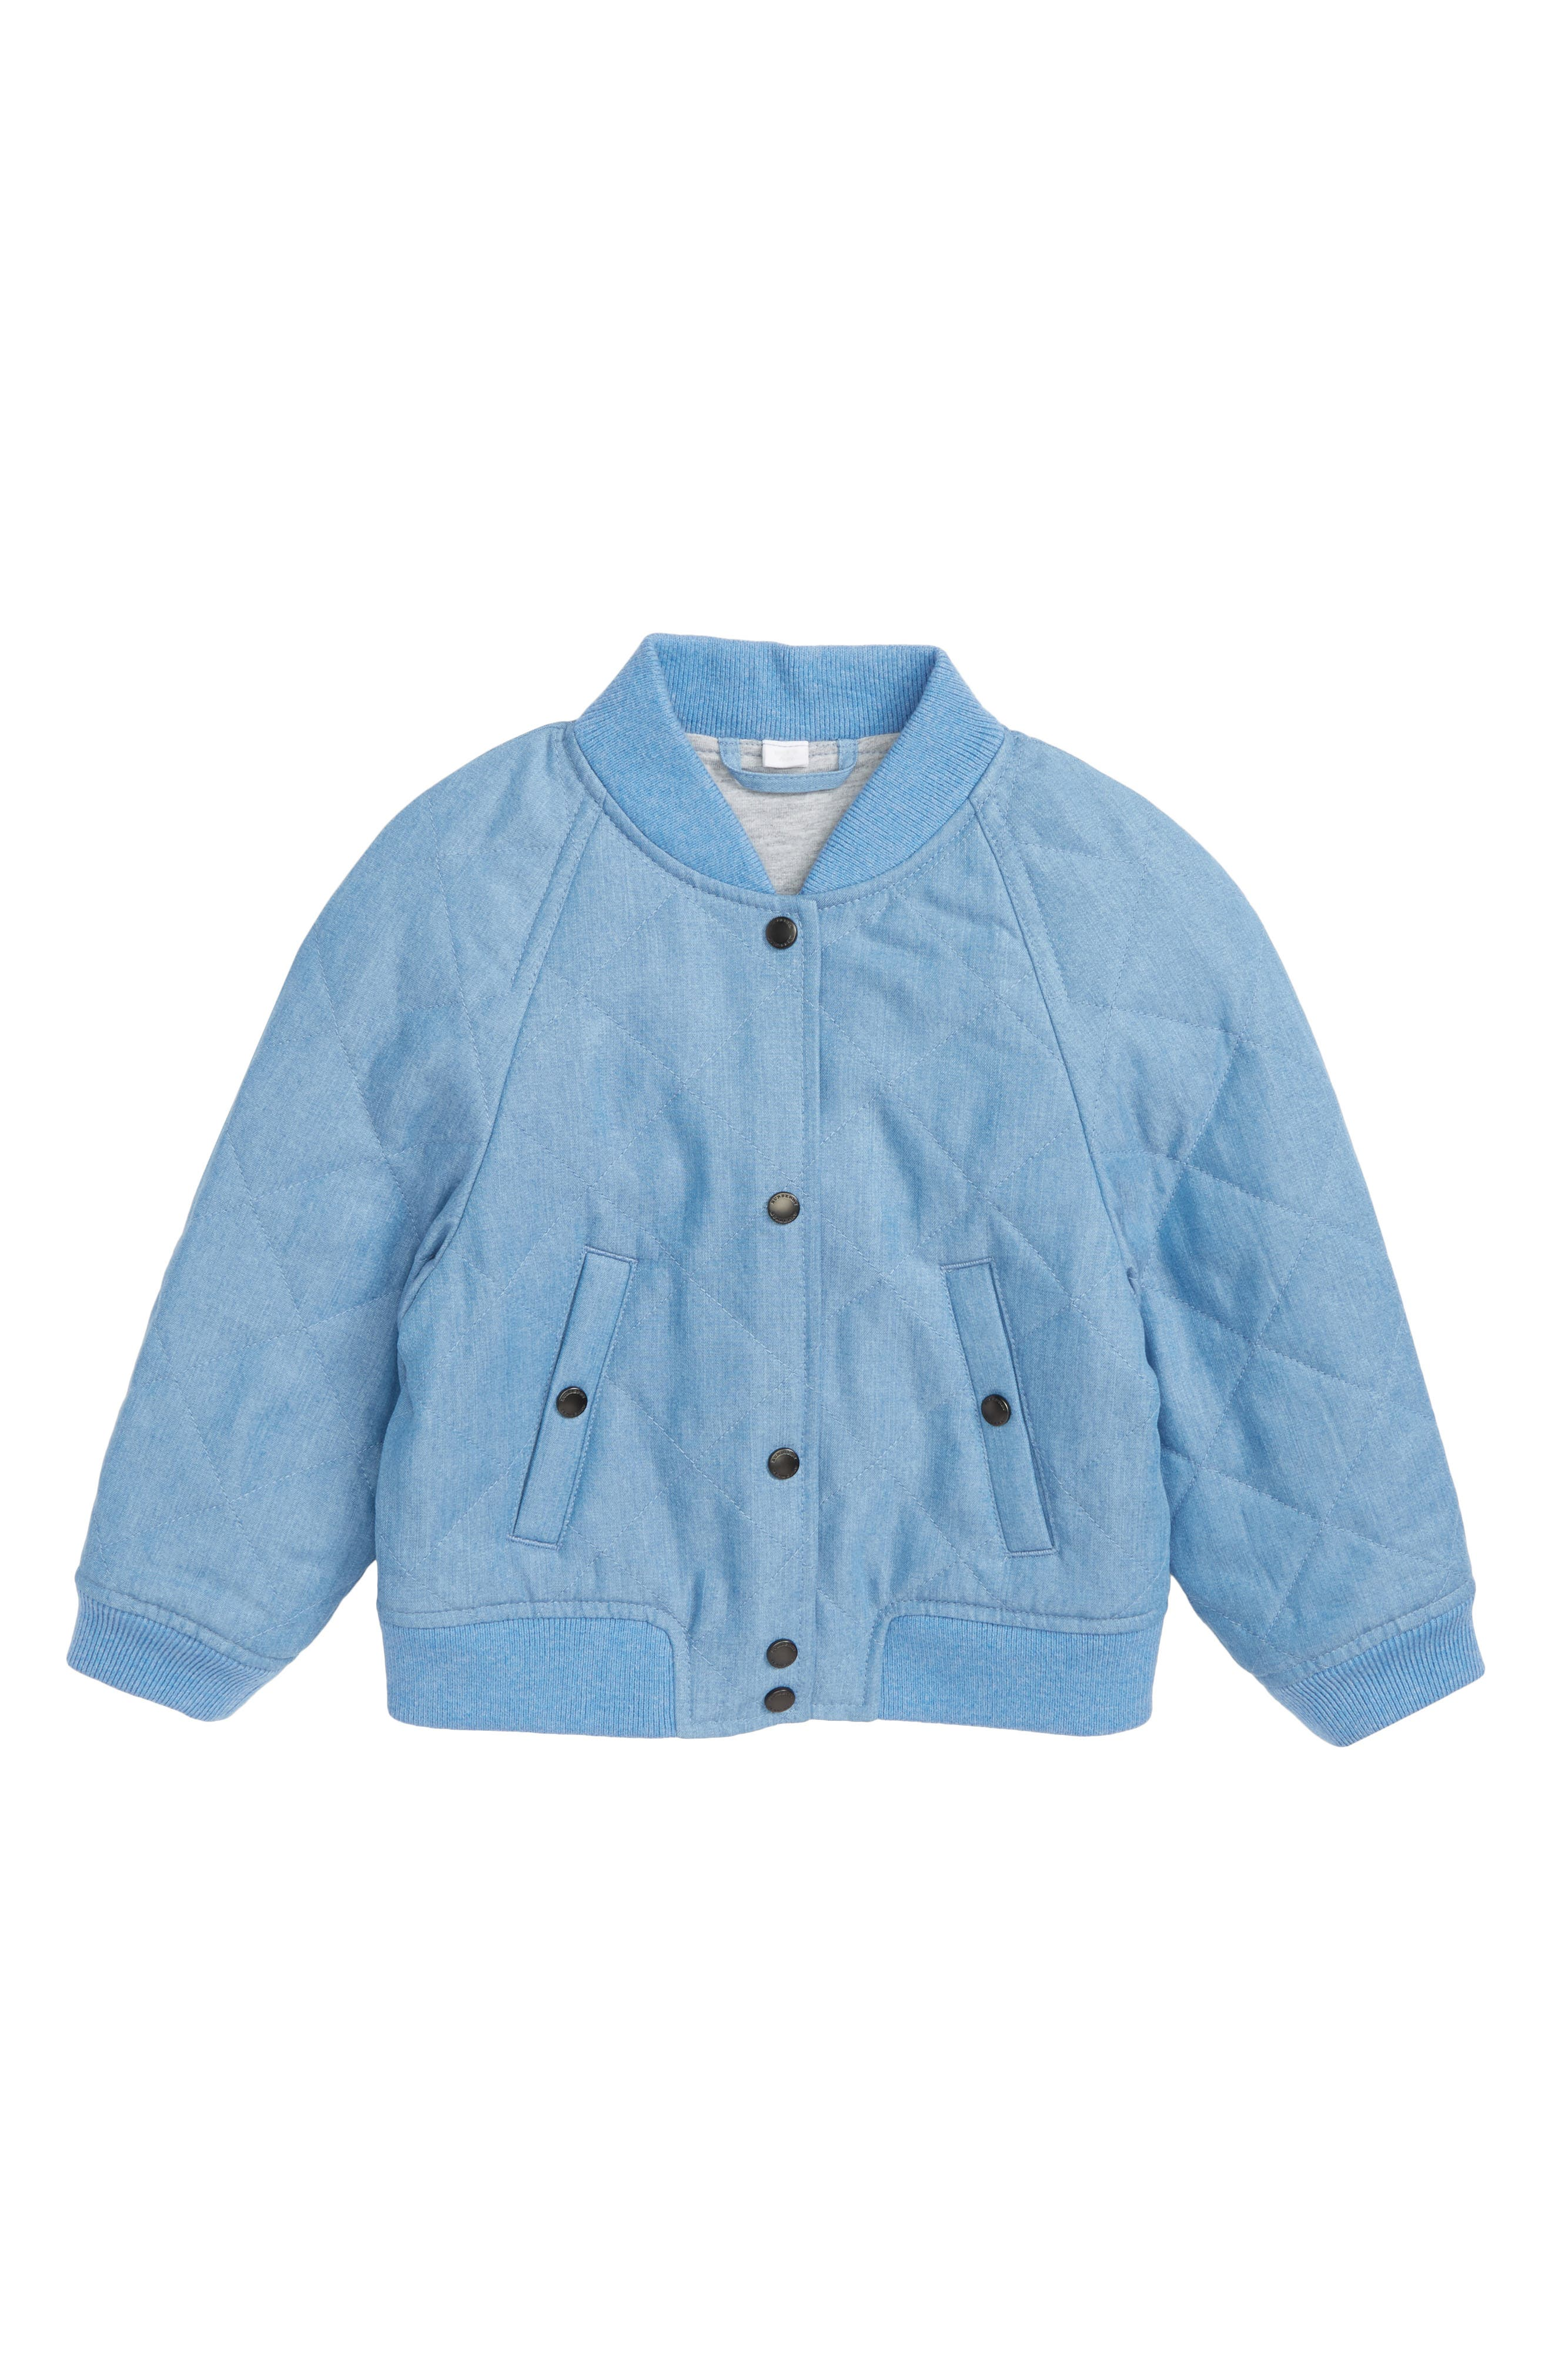 Joelle Quilted Denim Bomber Jacket,                         Main,                         color, 409